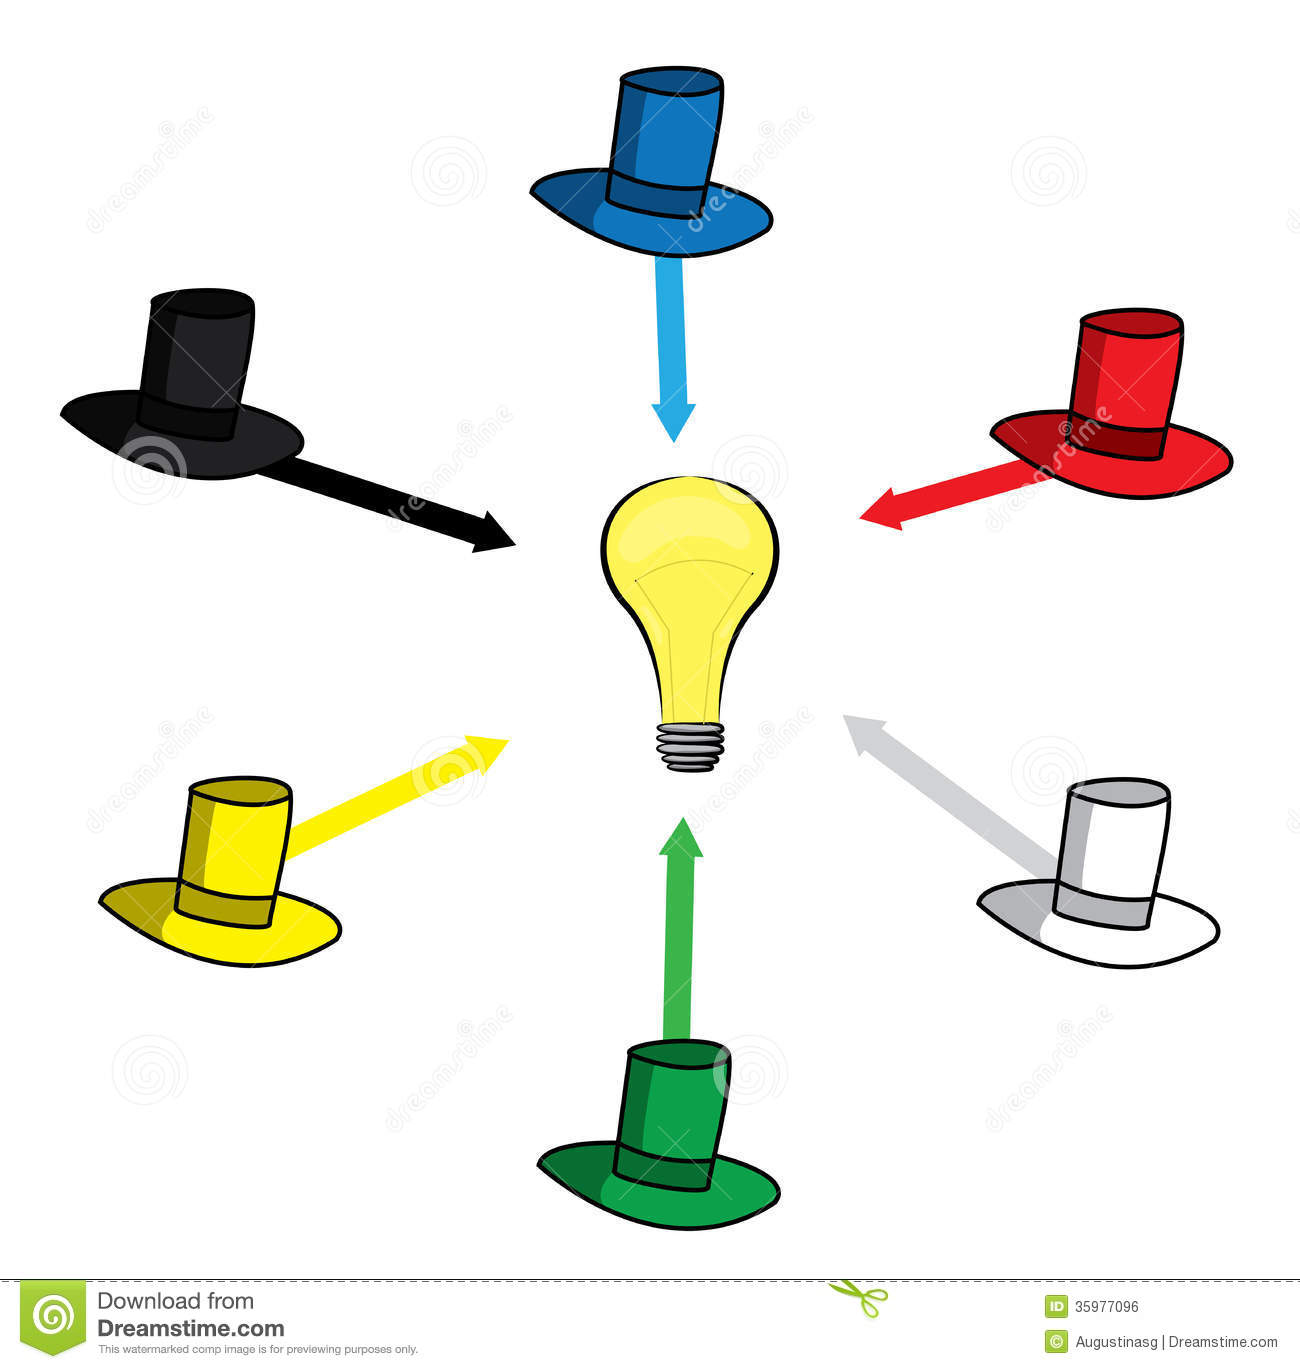 6 thinking hats clipart. Hat clipartfest six